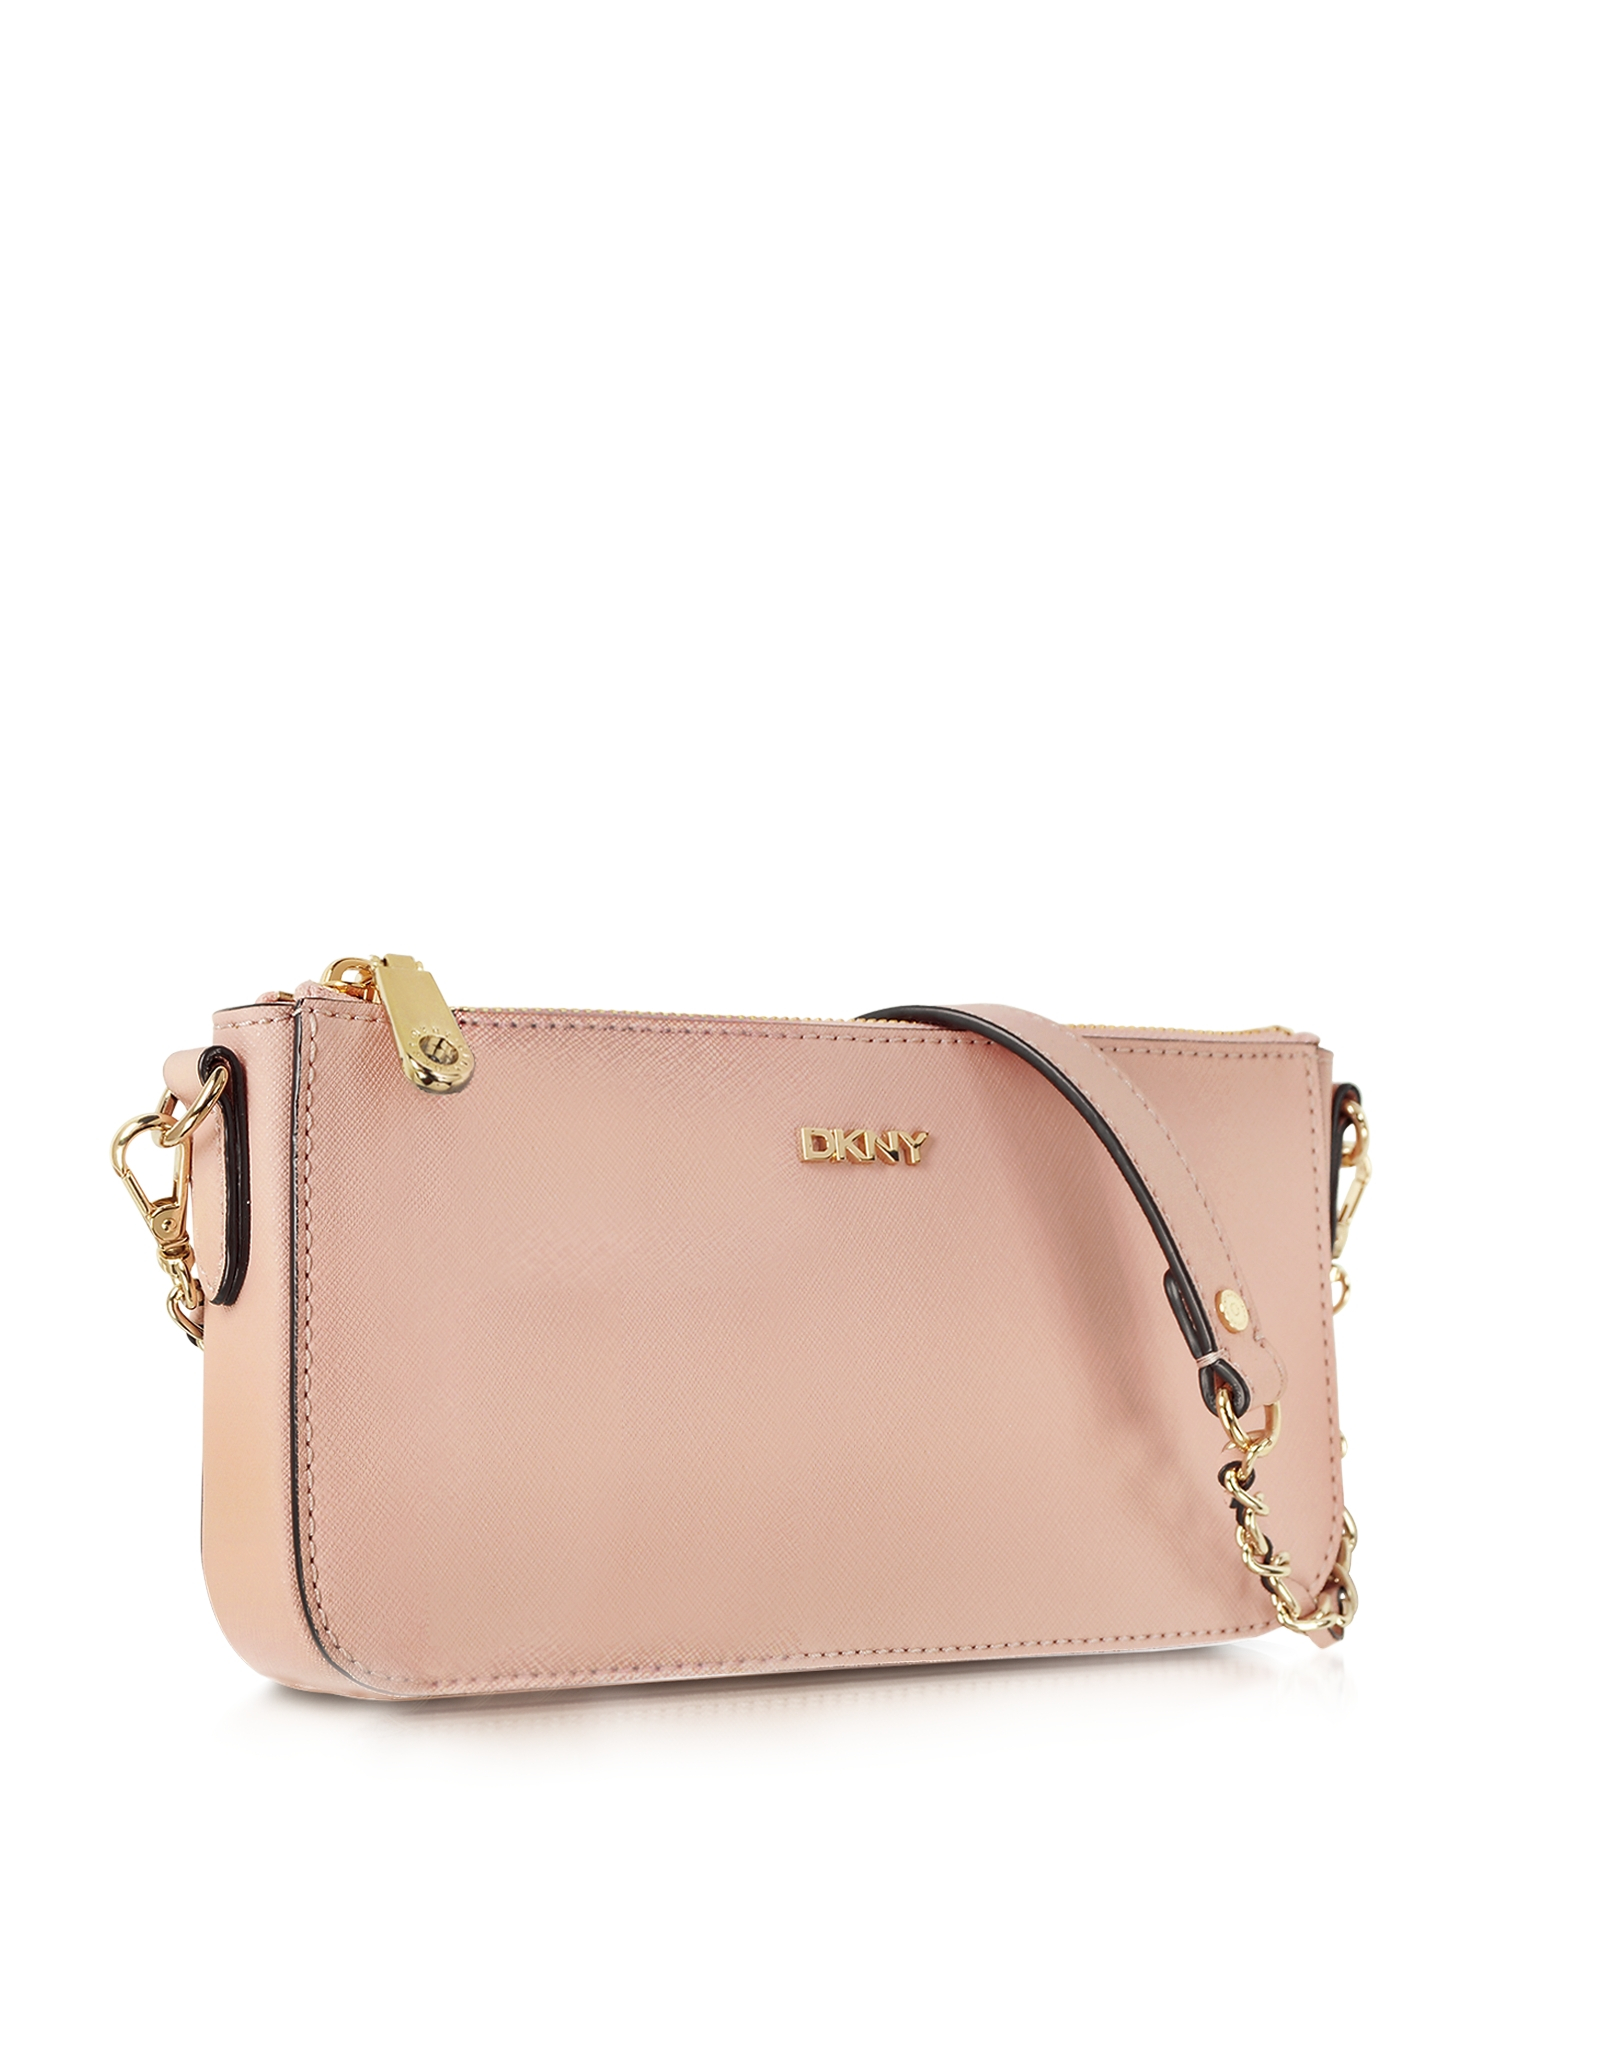 Dkny Bryant Park Blush Saffiano Leather Crossbody Bag in Pink | Lyst